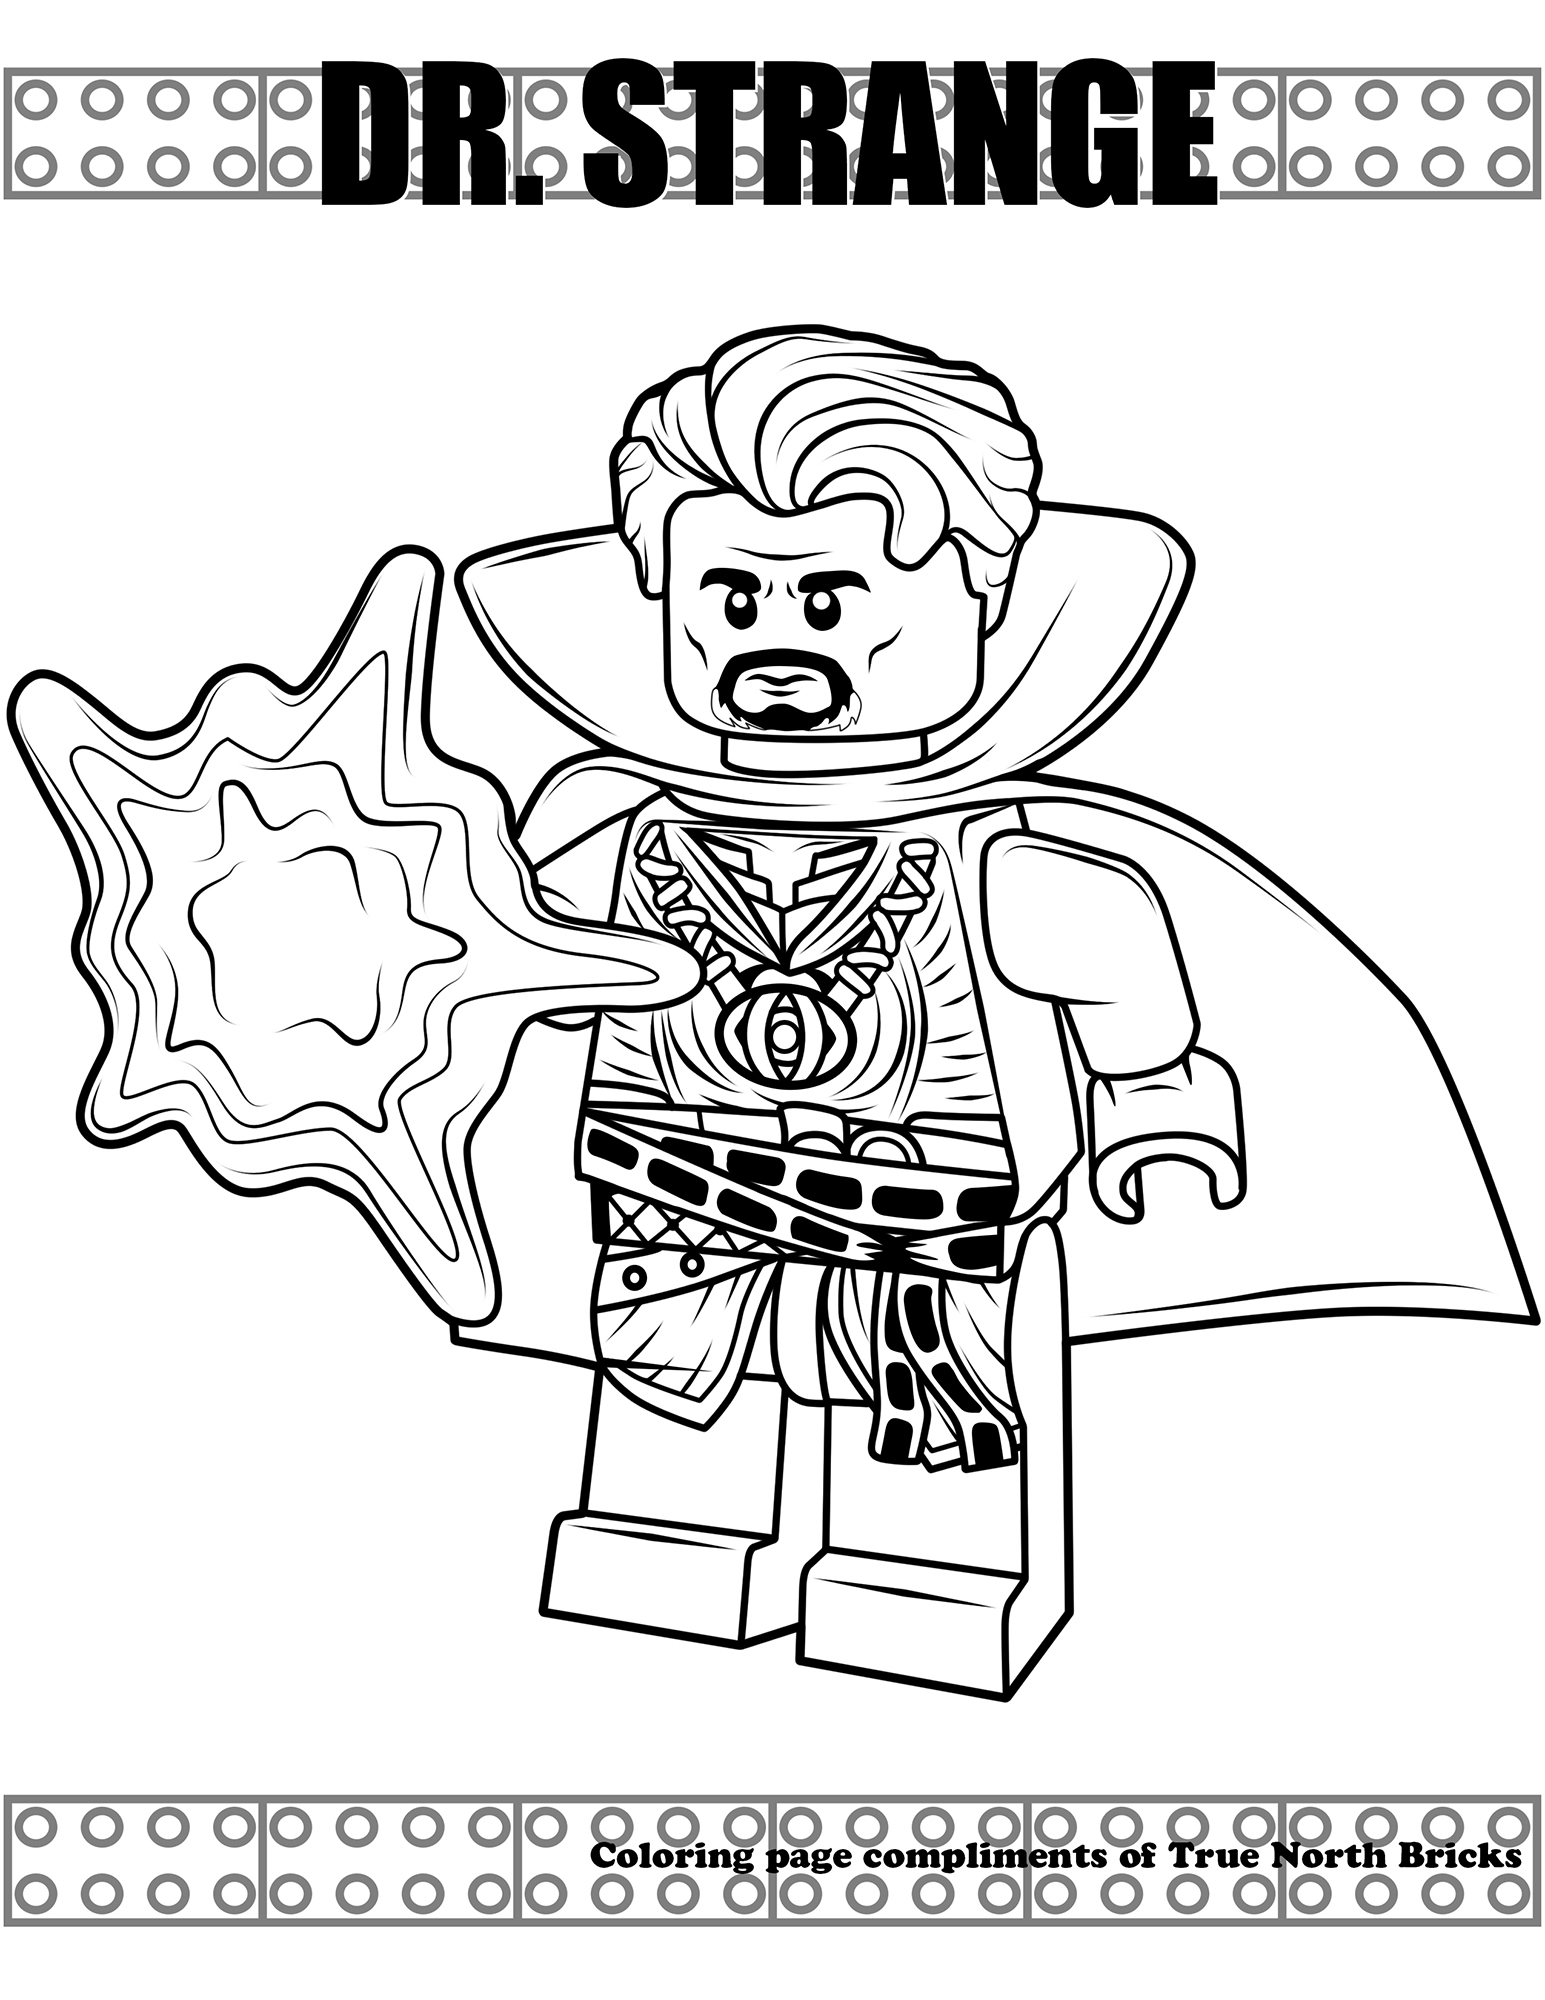 Coloring Page Dr Strange True North Bricks